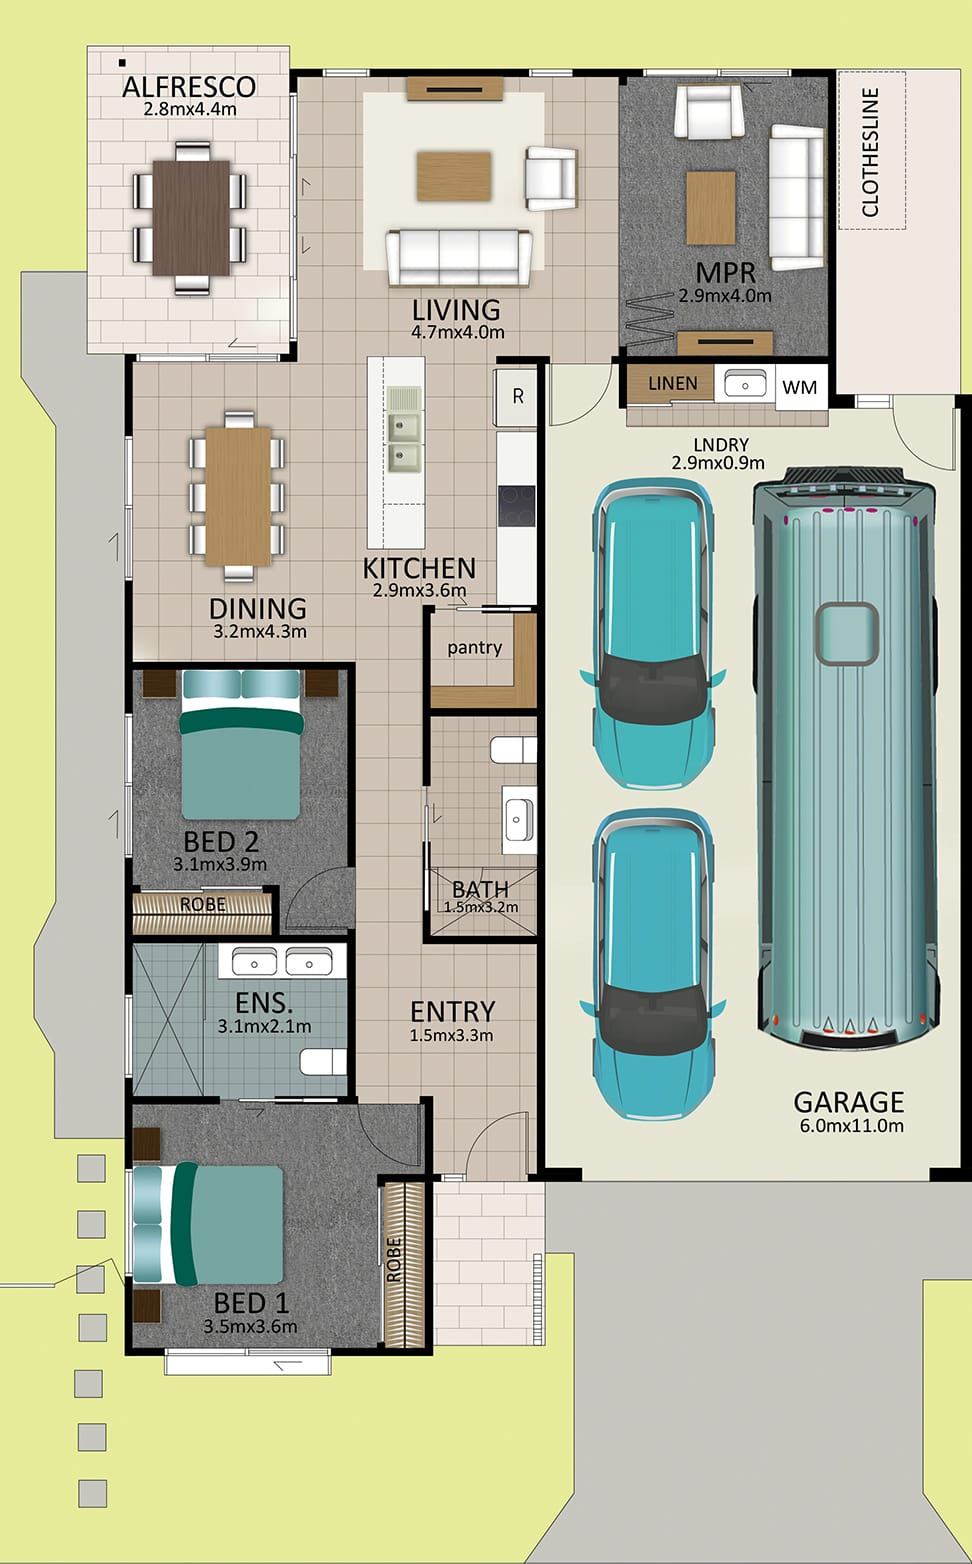 HR LAT25 Floorplan LOT 164 Davidson MK2 OCT19 V2 - Lot 164